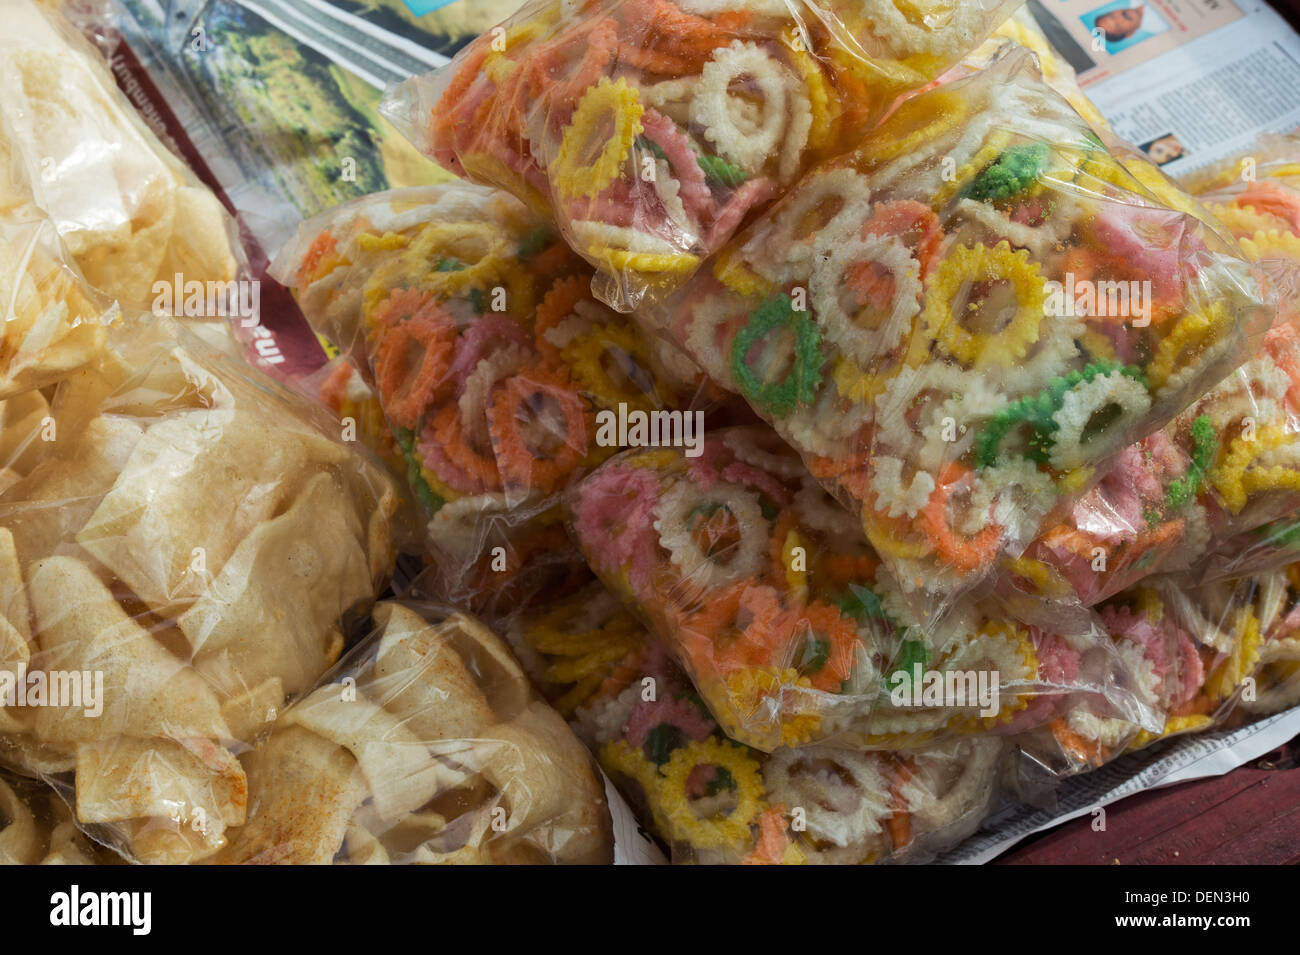 Deep fried indian snacks in plastic bags for sale at an indian market. India - Stock Image